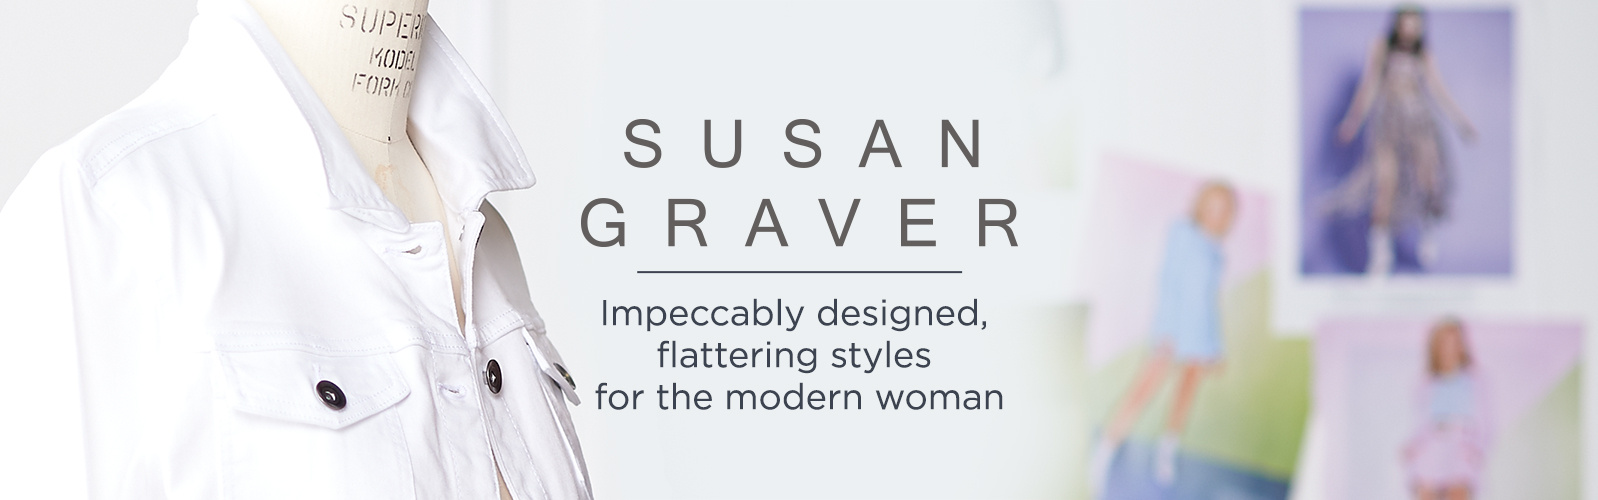 Susan Graver. Impeccably designed, flattering styles for the modern woman